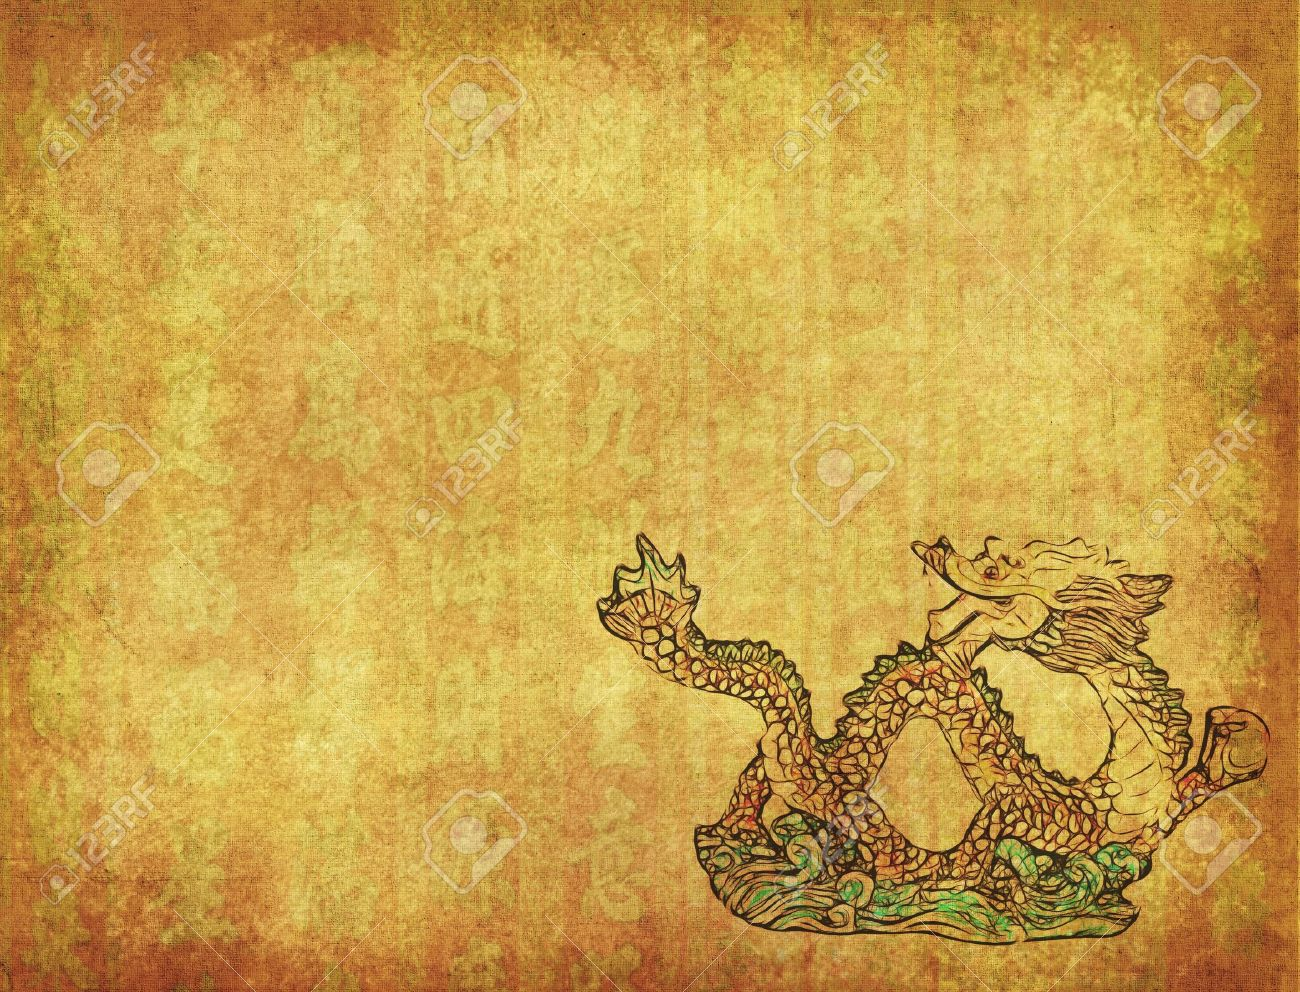 Chinese Dragon And Texture Background Stock Photo Picture And